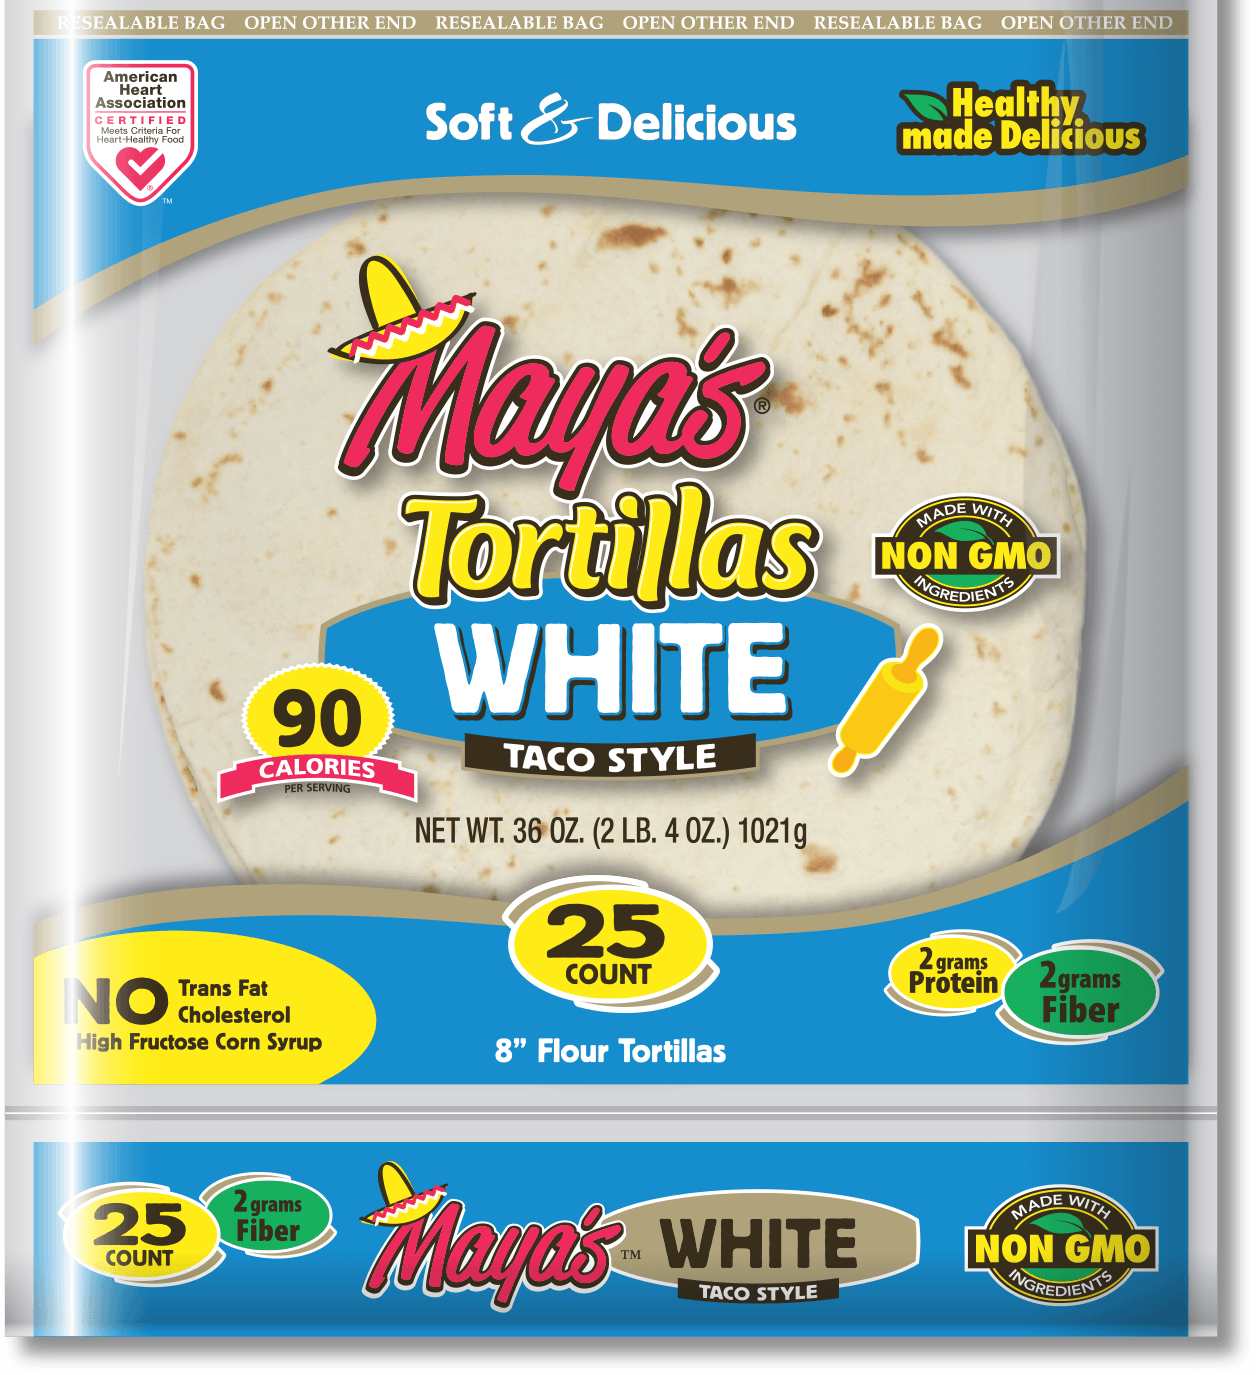 PNG_Maya's-25-Count-8White-Face-Slick